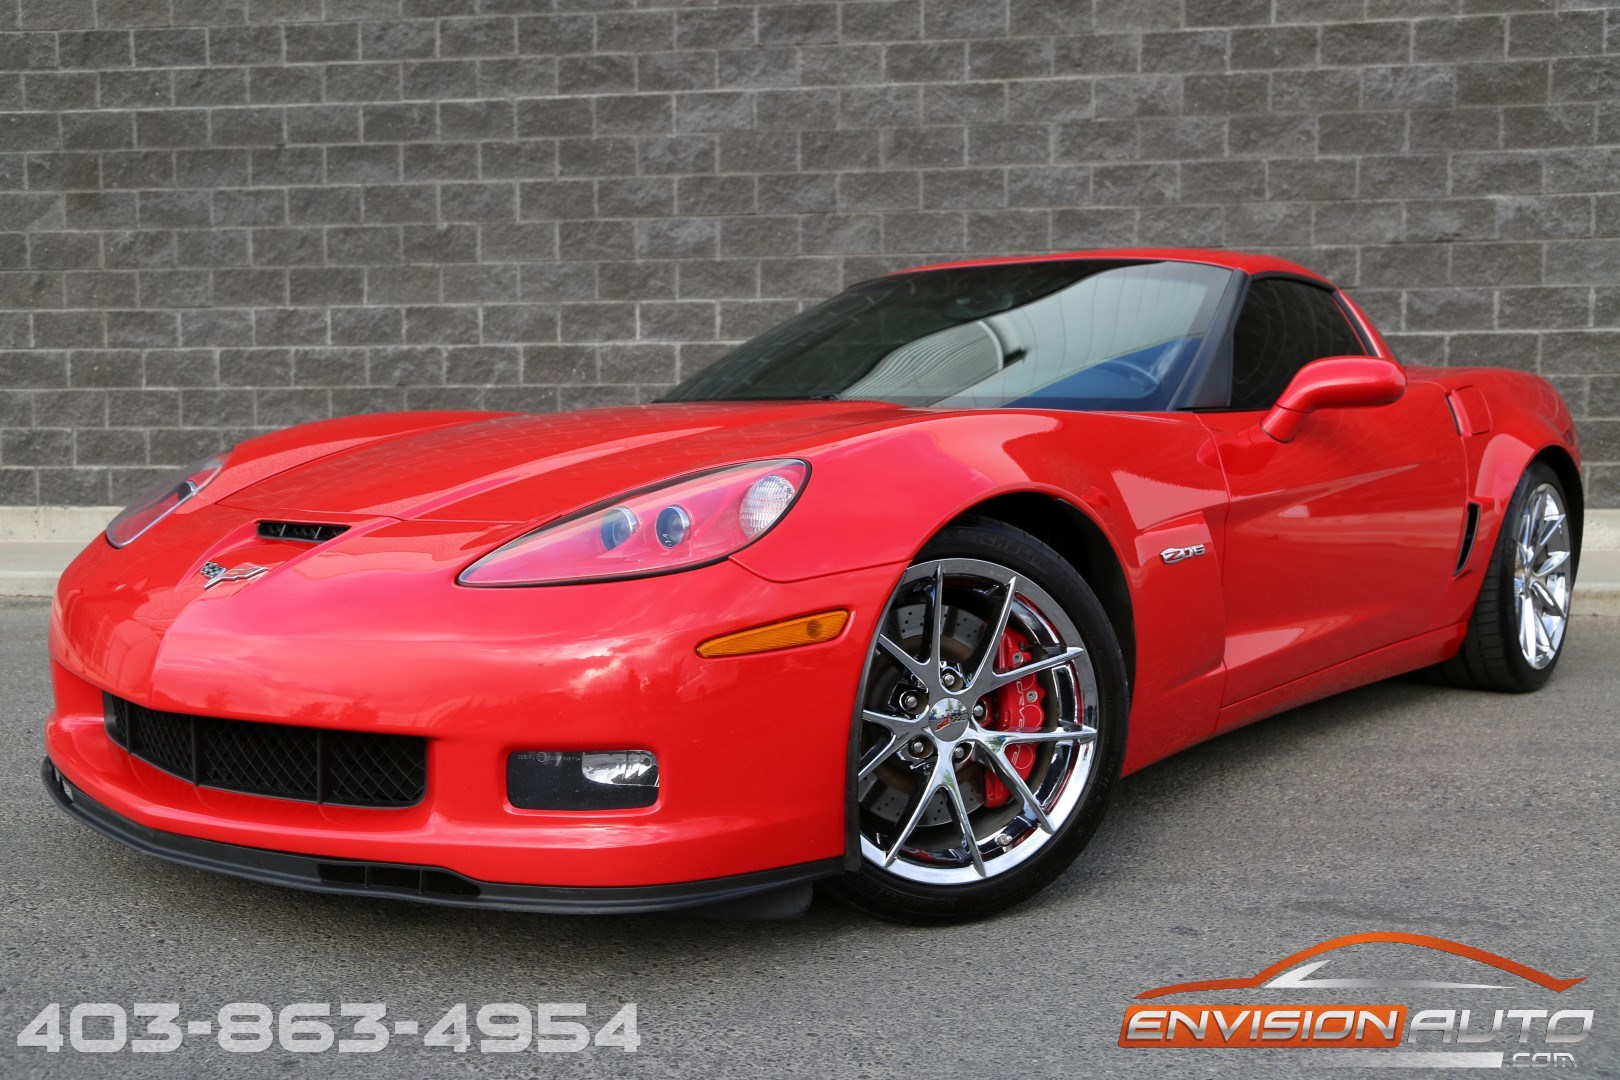 2010 Chevrolet Corvette Z06 505HP – 3LZ – Leather Wrap Interior ...